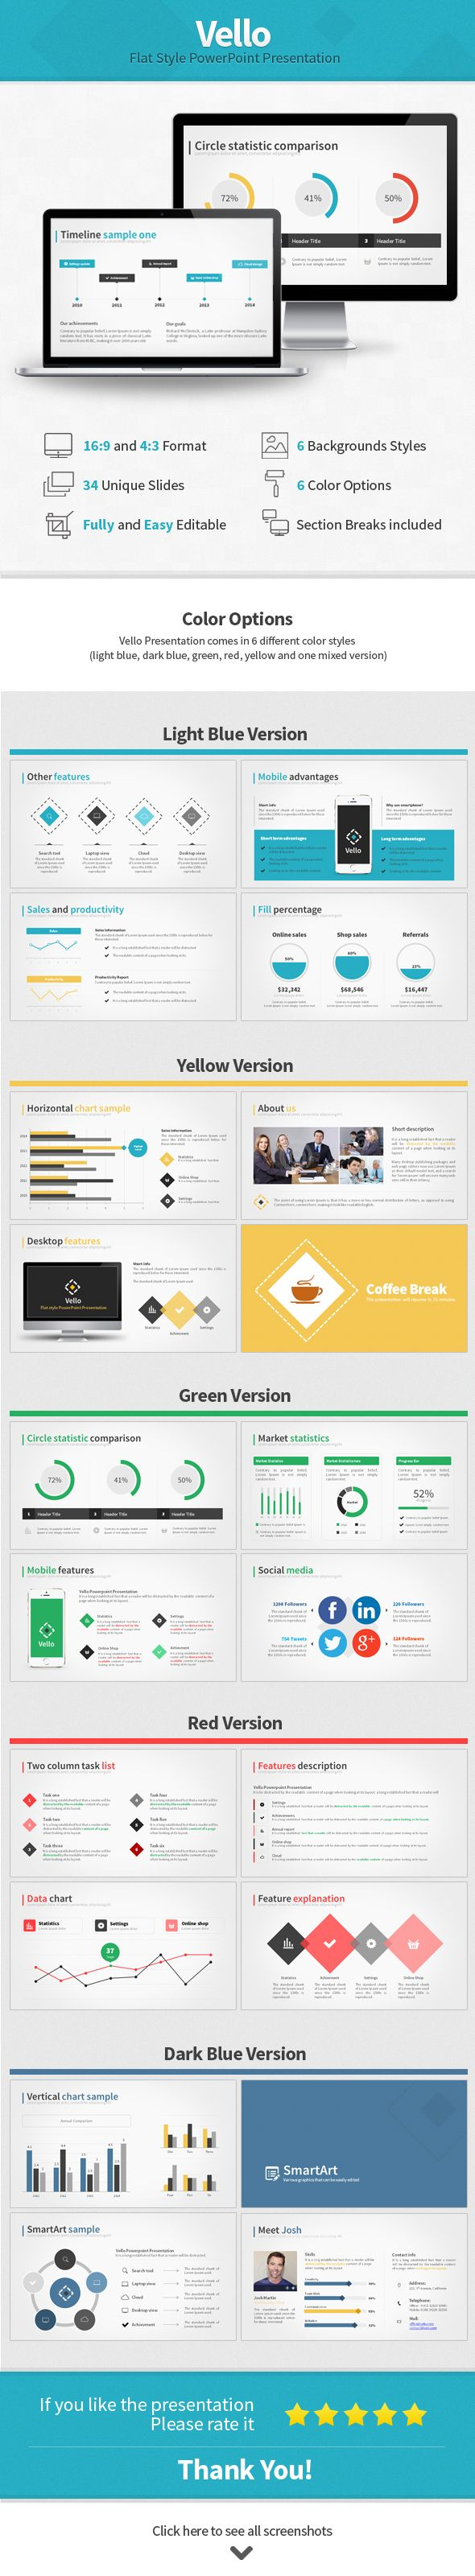 Vello is our latest PowerPoint presentation with a flat, simple and modern style, ready for you to succes with your business. With 34 unique slides you can easily present your data and impress your colleagues and partners. You can easly customize the slides to mold the presentation for your needs. We have already made 5 color themes for you to choose from, as well as a version with mixed colors.  Download: http://graphicriver.net/item/vello-flat-style-presentation/7696497?ref=iDny